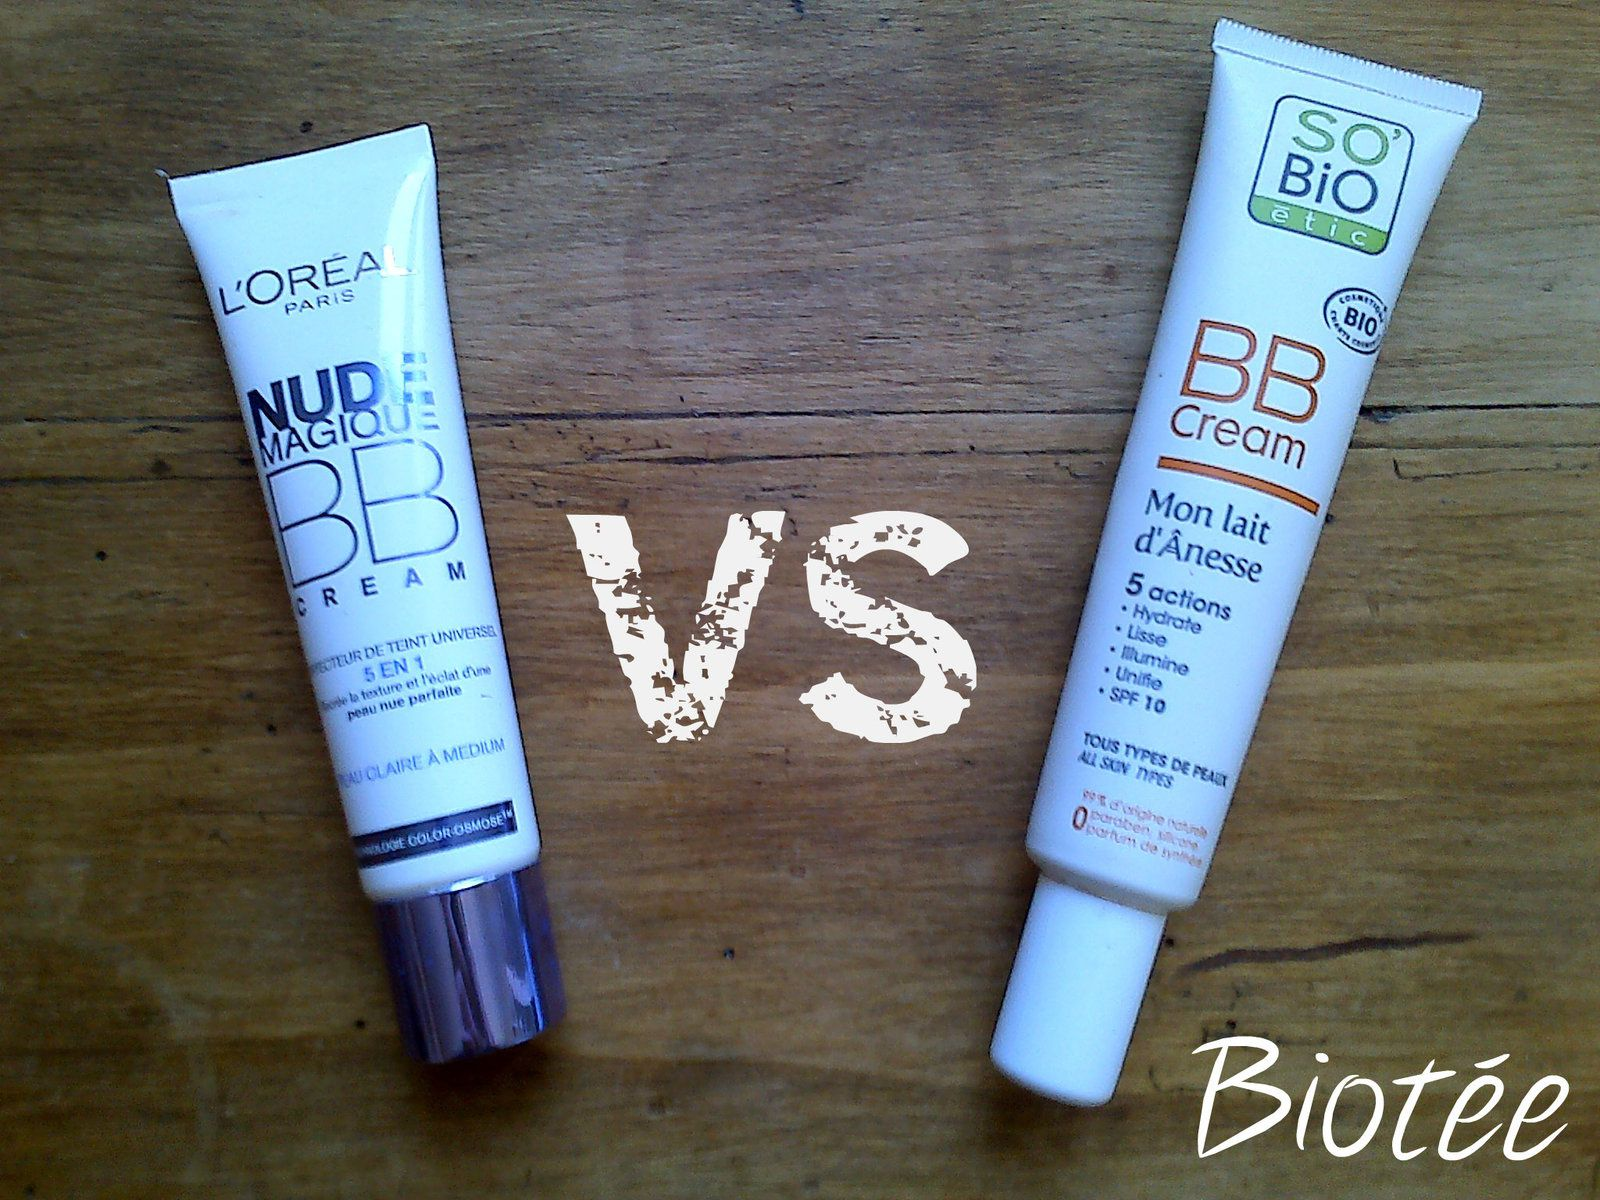 Match #1 BB cream